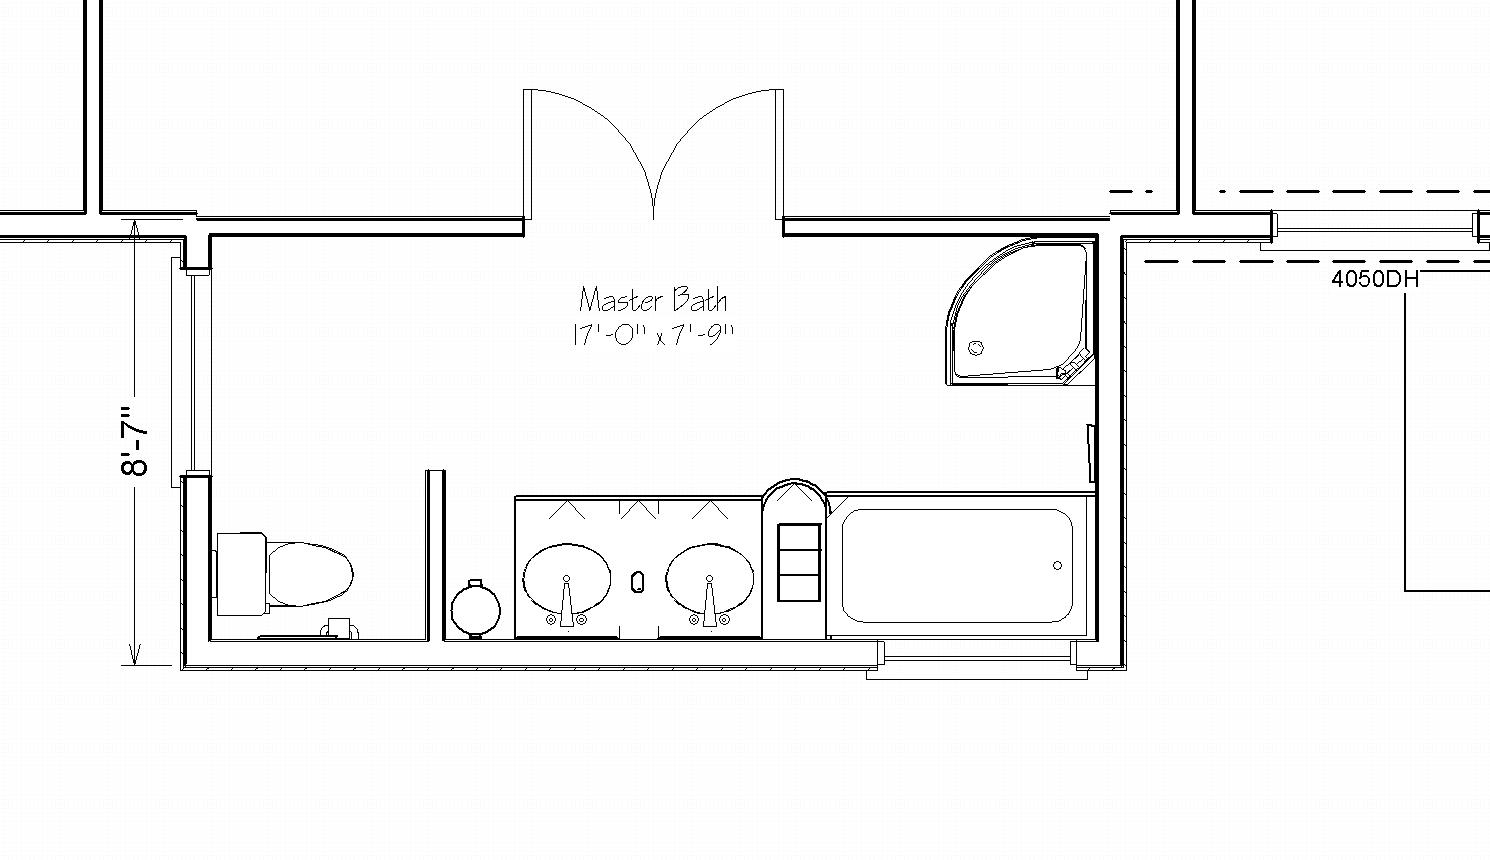 Master bath suite addition 17 by 8 extensions simply additions Master bedroom addition plans